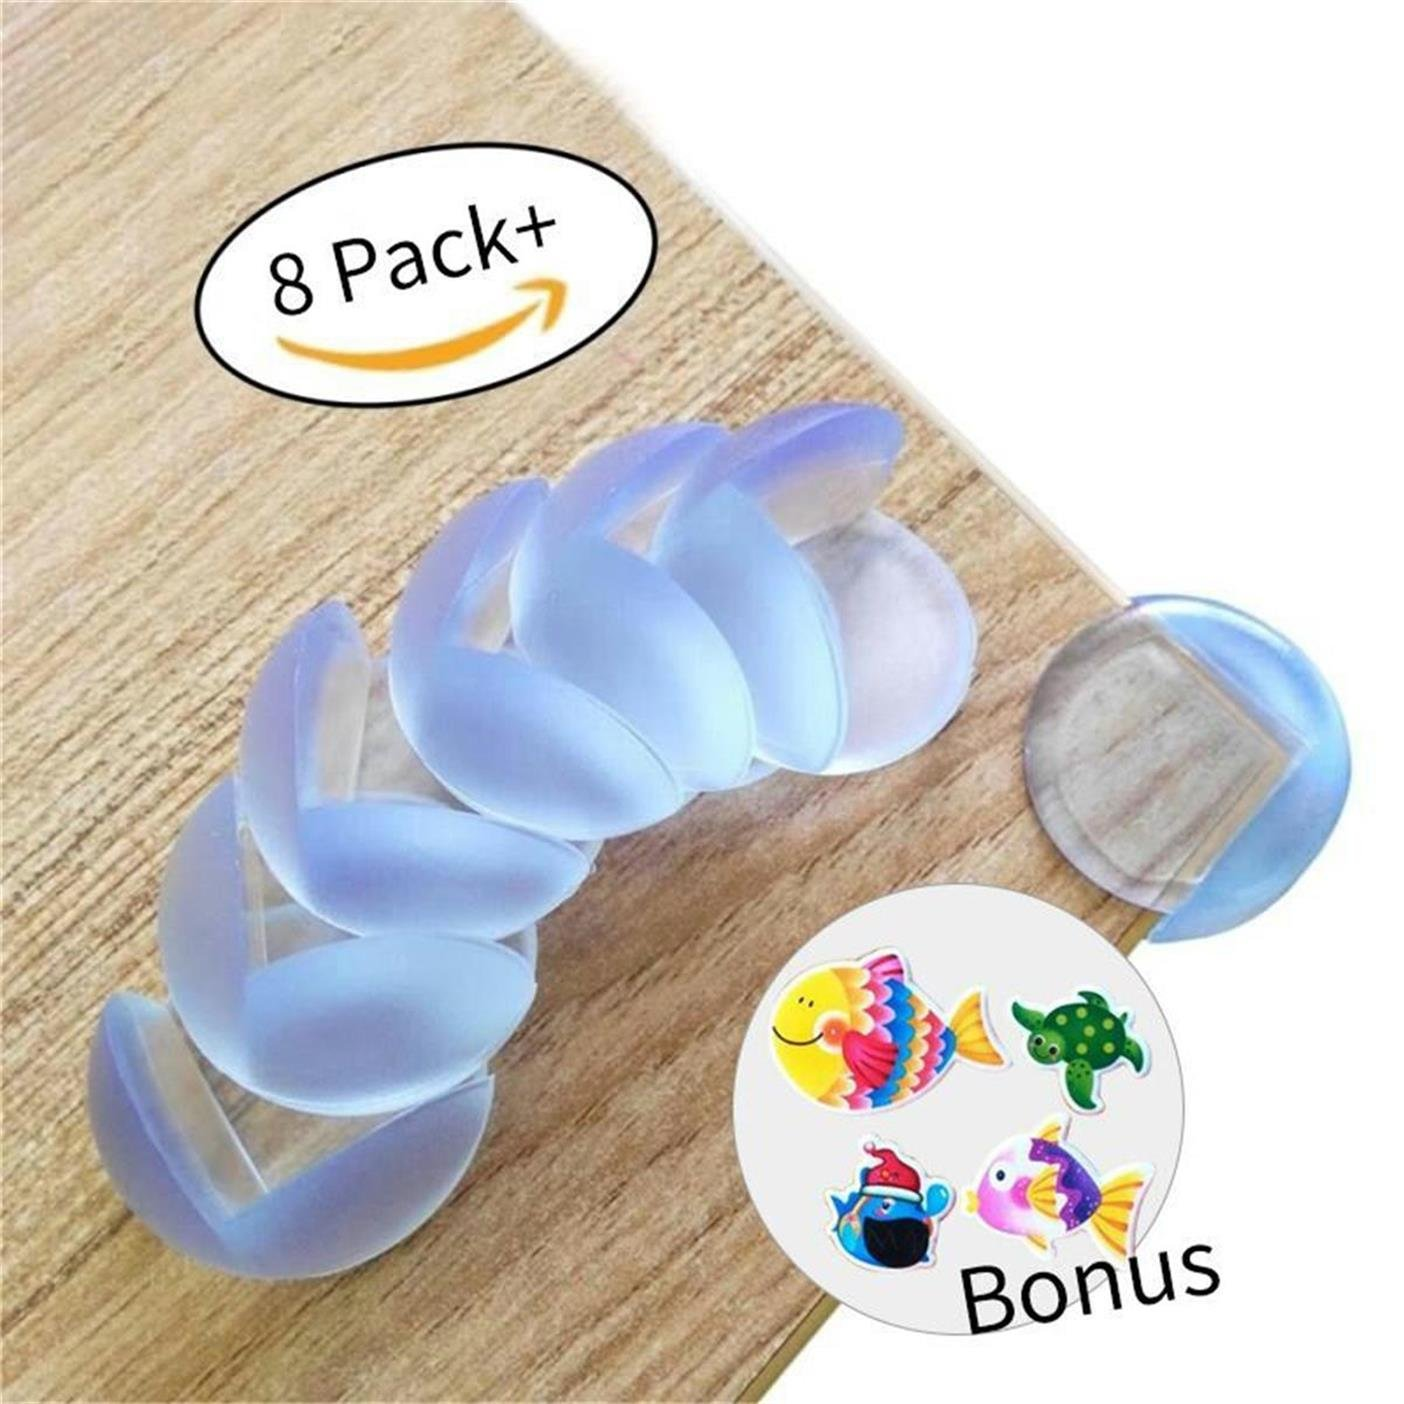 8-pack MEDICAL GRADE Baby guards from Paris Babyhome-Clear Furniture Corner Protectors-Child Proof Corner Safety Bumpers-Baby Proofing Corner Guards (8pack, clear) Paris Baby Home Inc